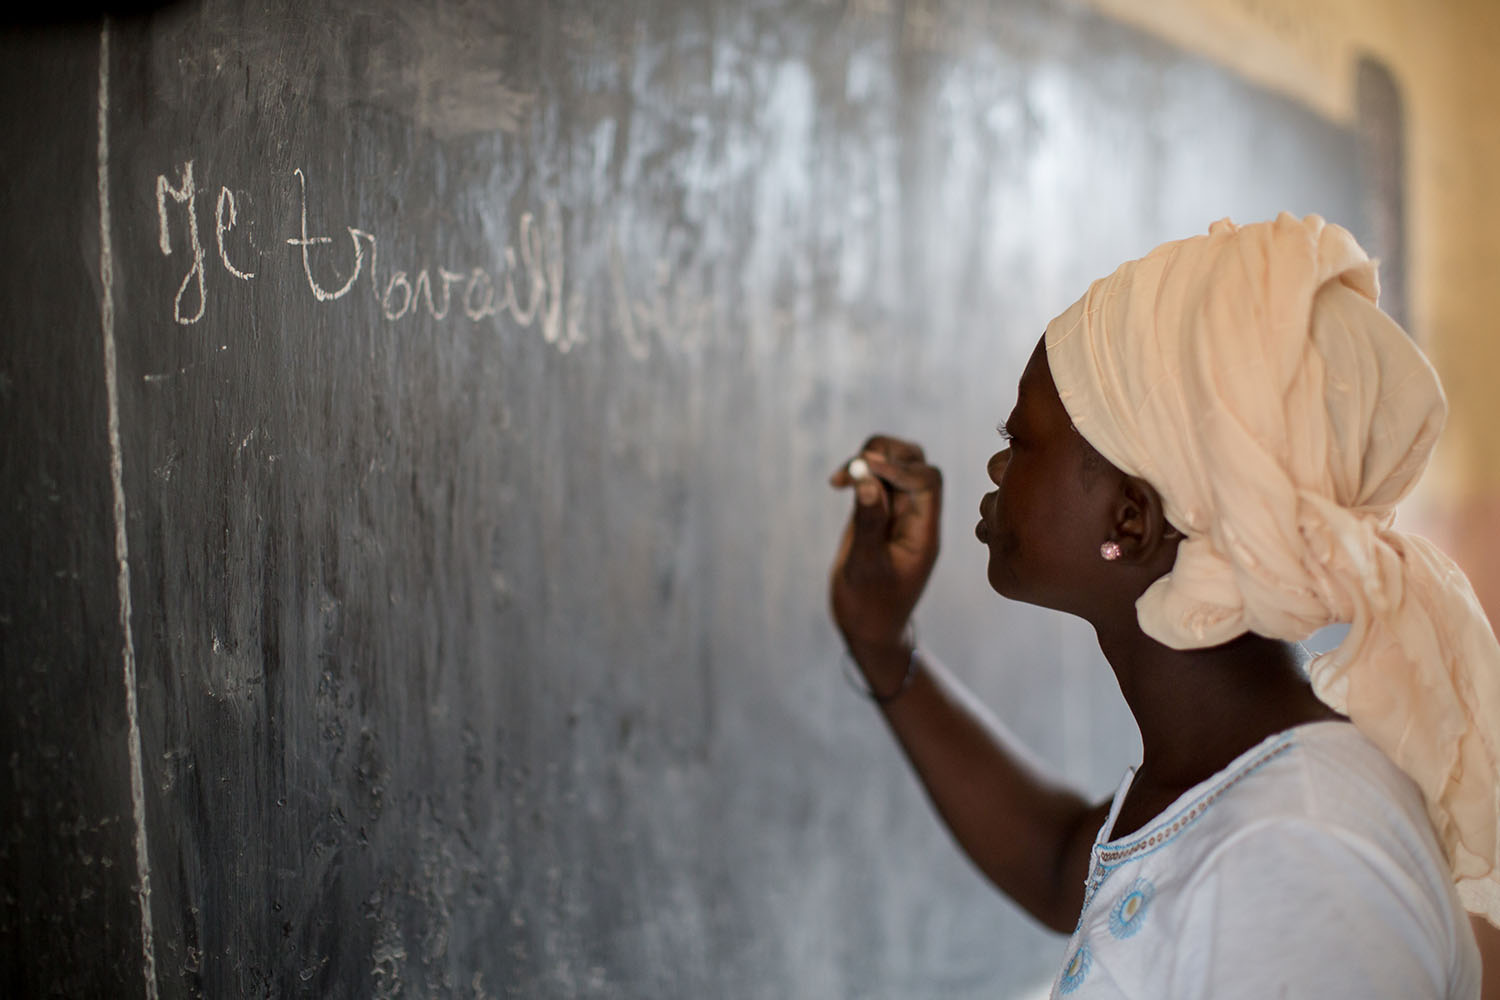 Abibatou Togola, 15 years, (released) writes on the black board at school. 45 – 50% of the population of Mali cannot read or write. But Mali's education system remains largely unequal and unfair, especially for girls who are often forced into early ma